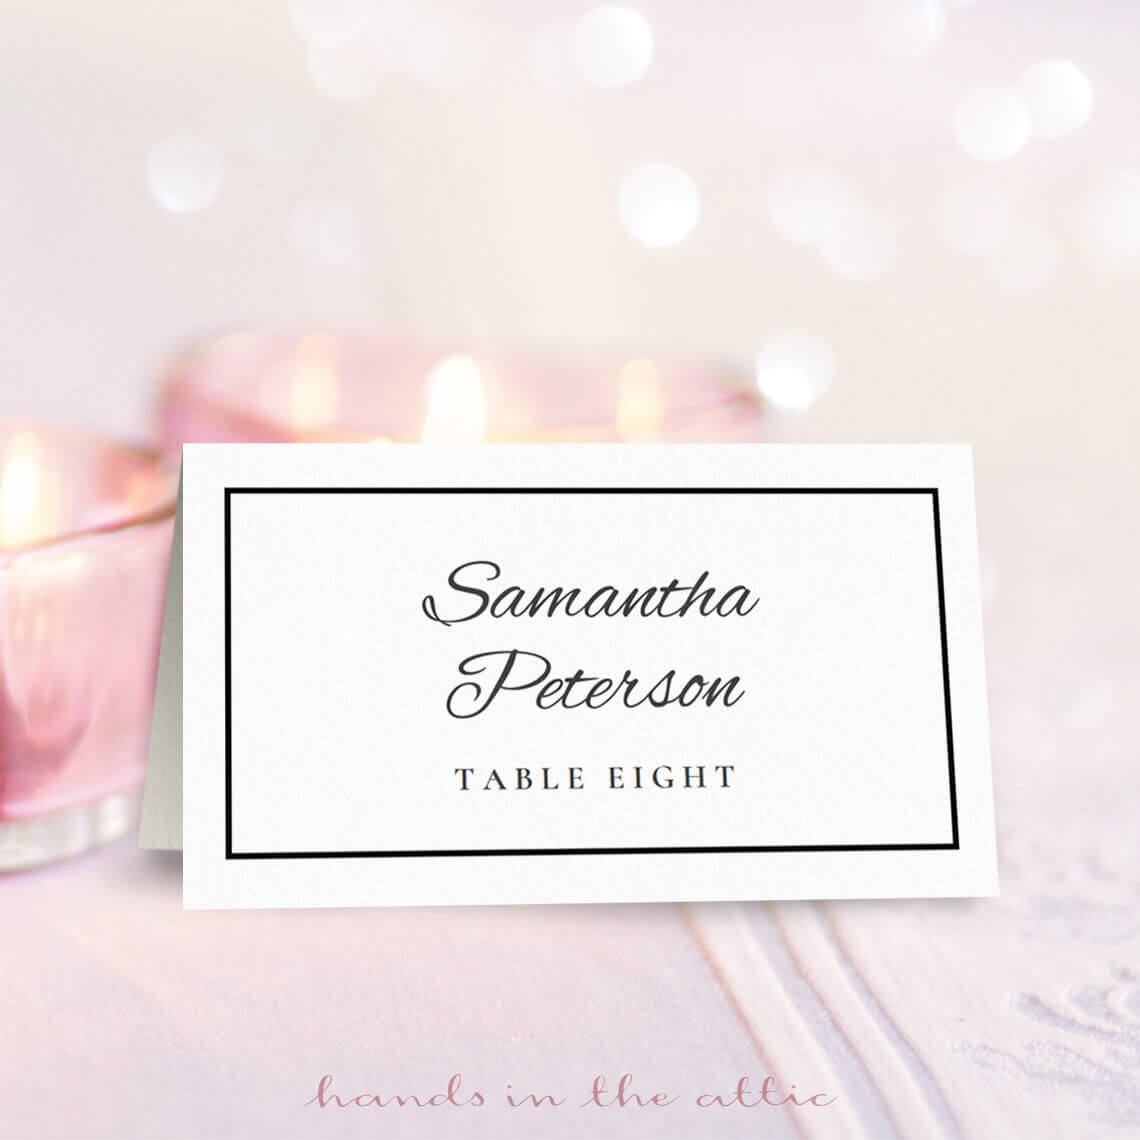 8 Free Wedding Place Card Templates For Table Reservation Card Template